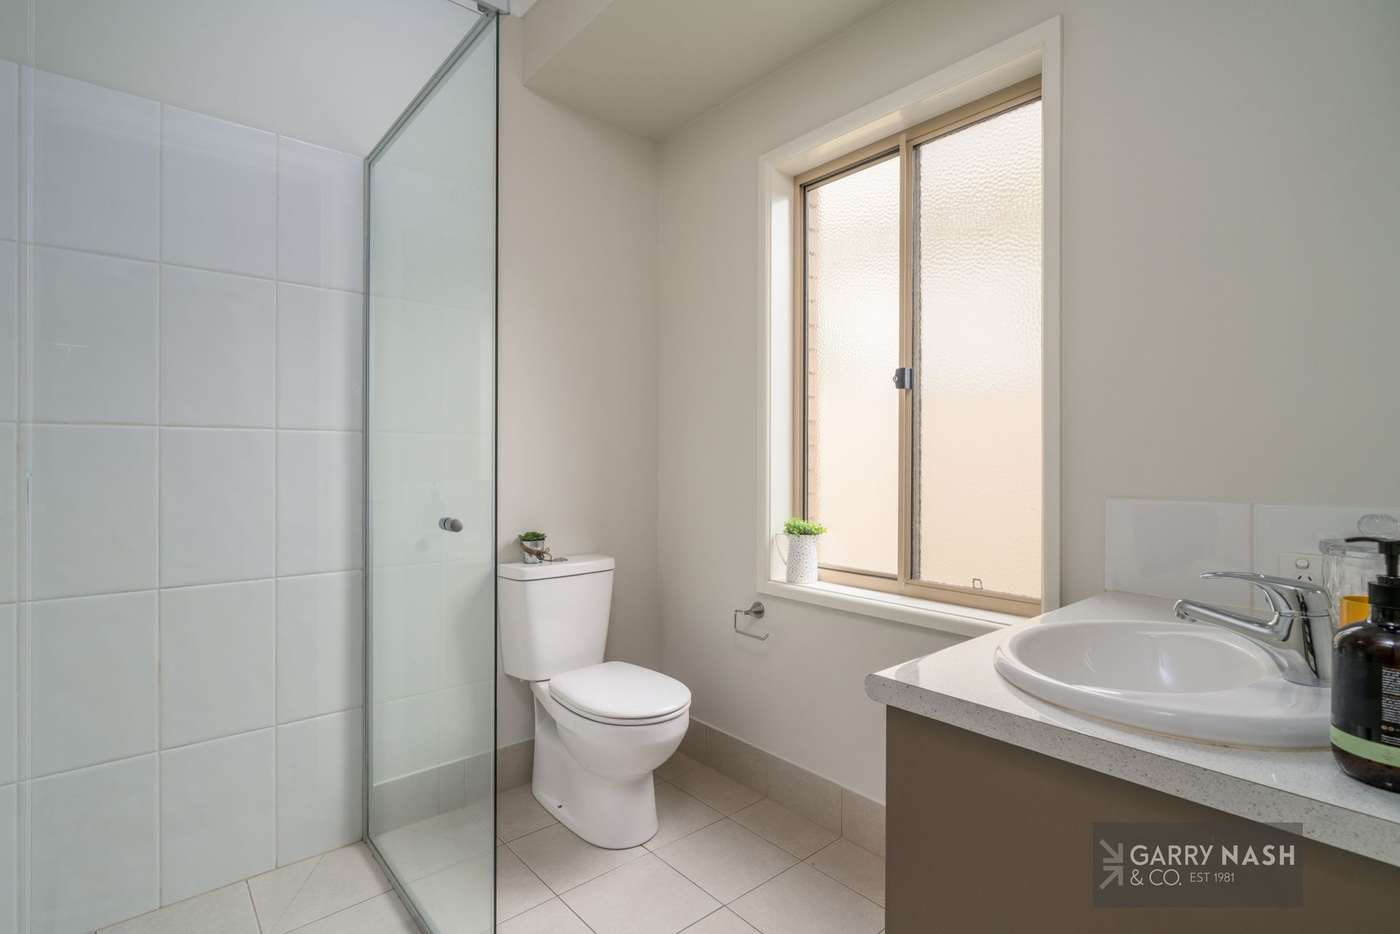 Sixth view of Homely house listing, 11 Froh Court, Wangaratta VIC 3677